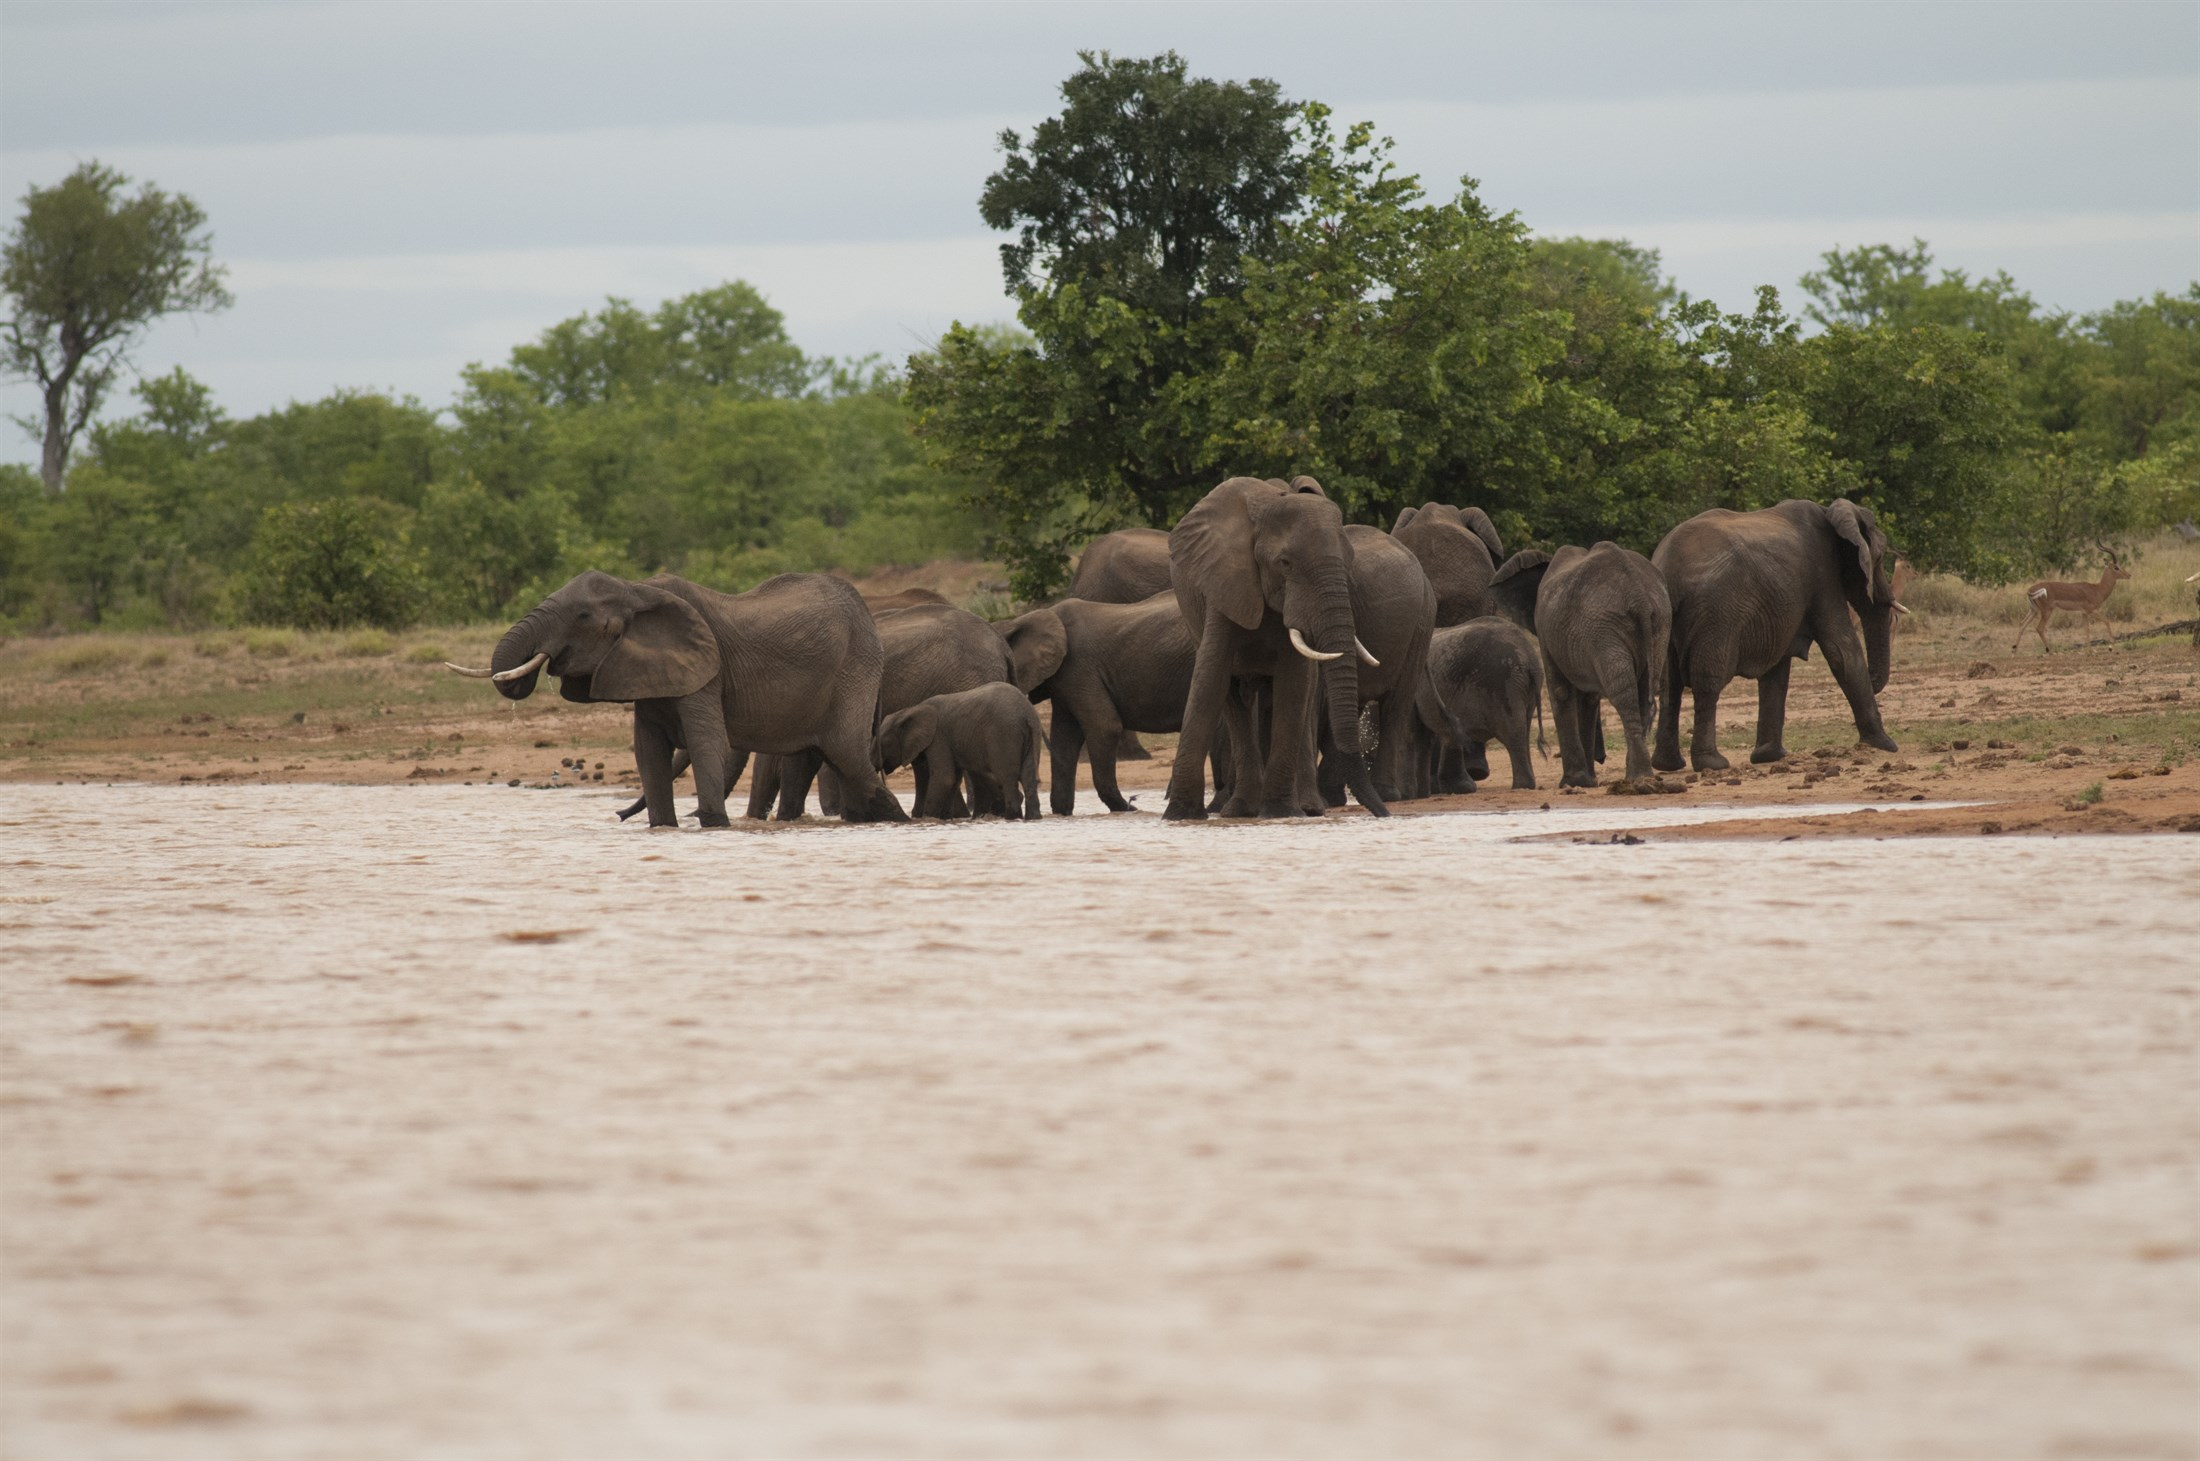 Africa elephants, Krüger national park